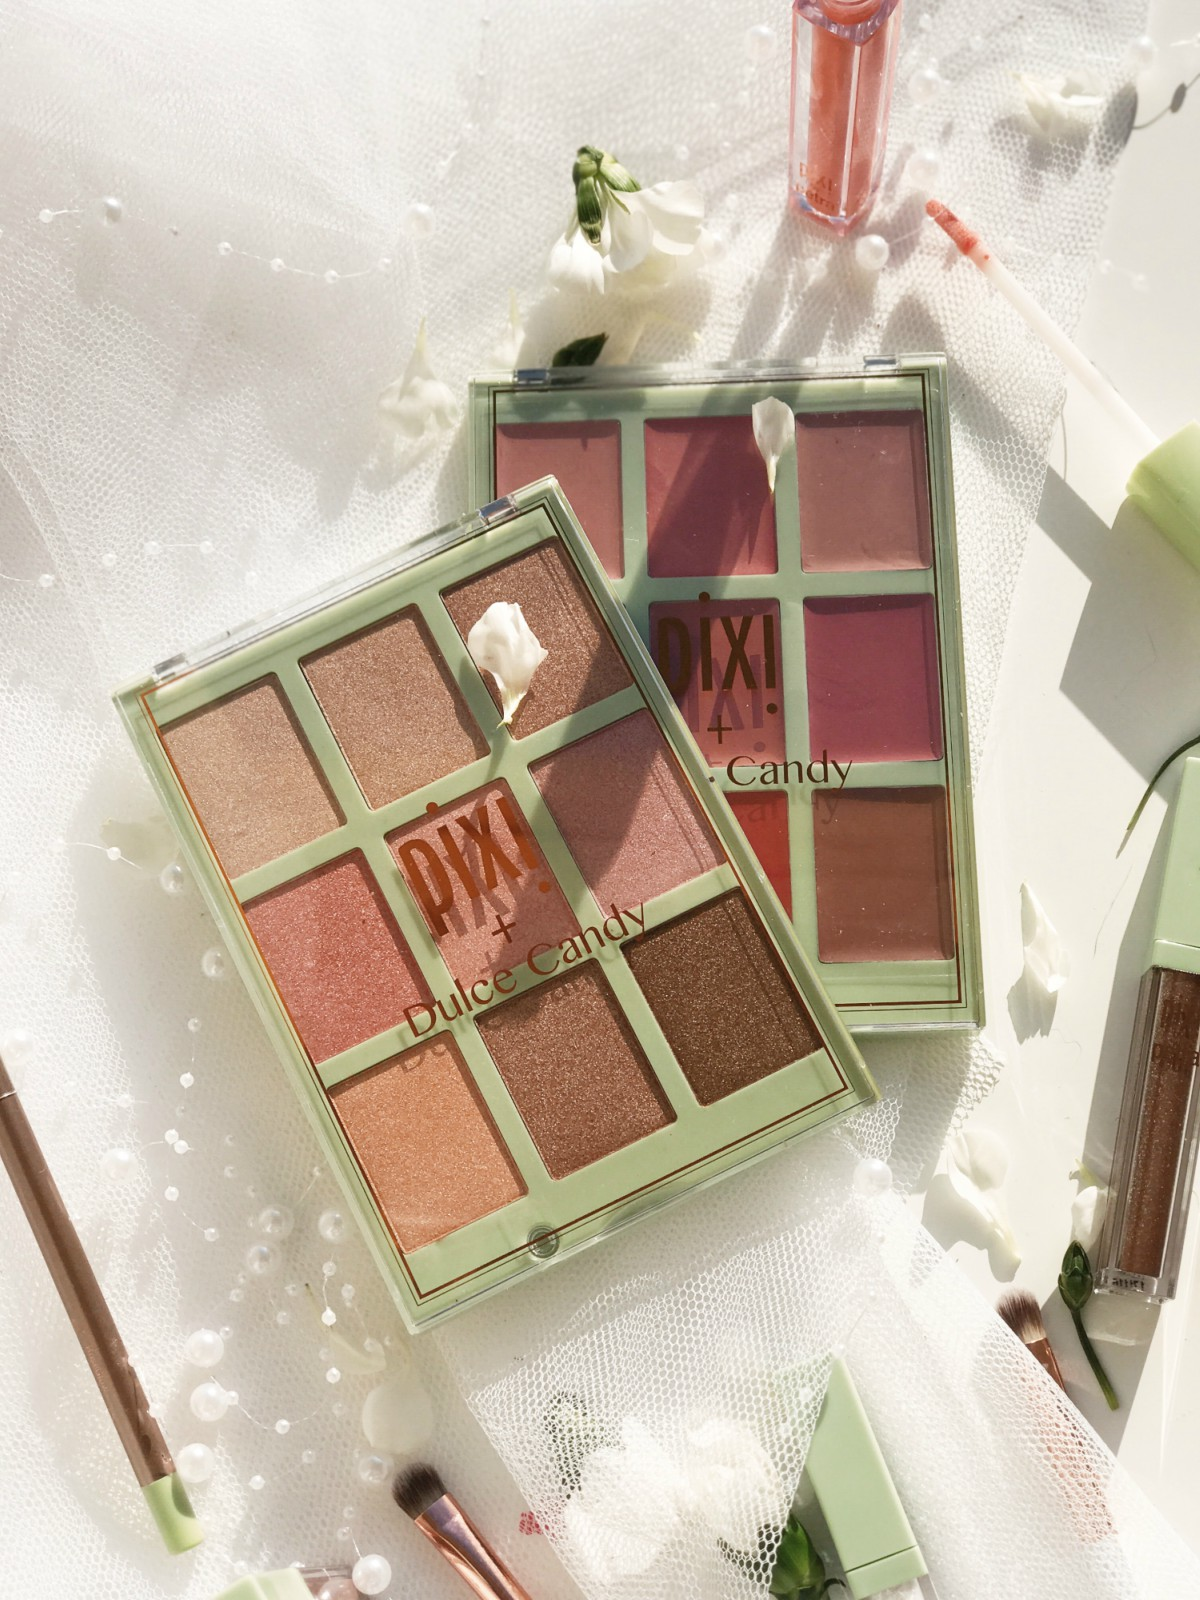 #pixipretties Pixi Dulce Candy Palettes Review